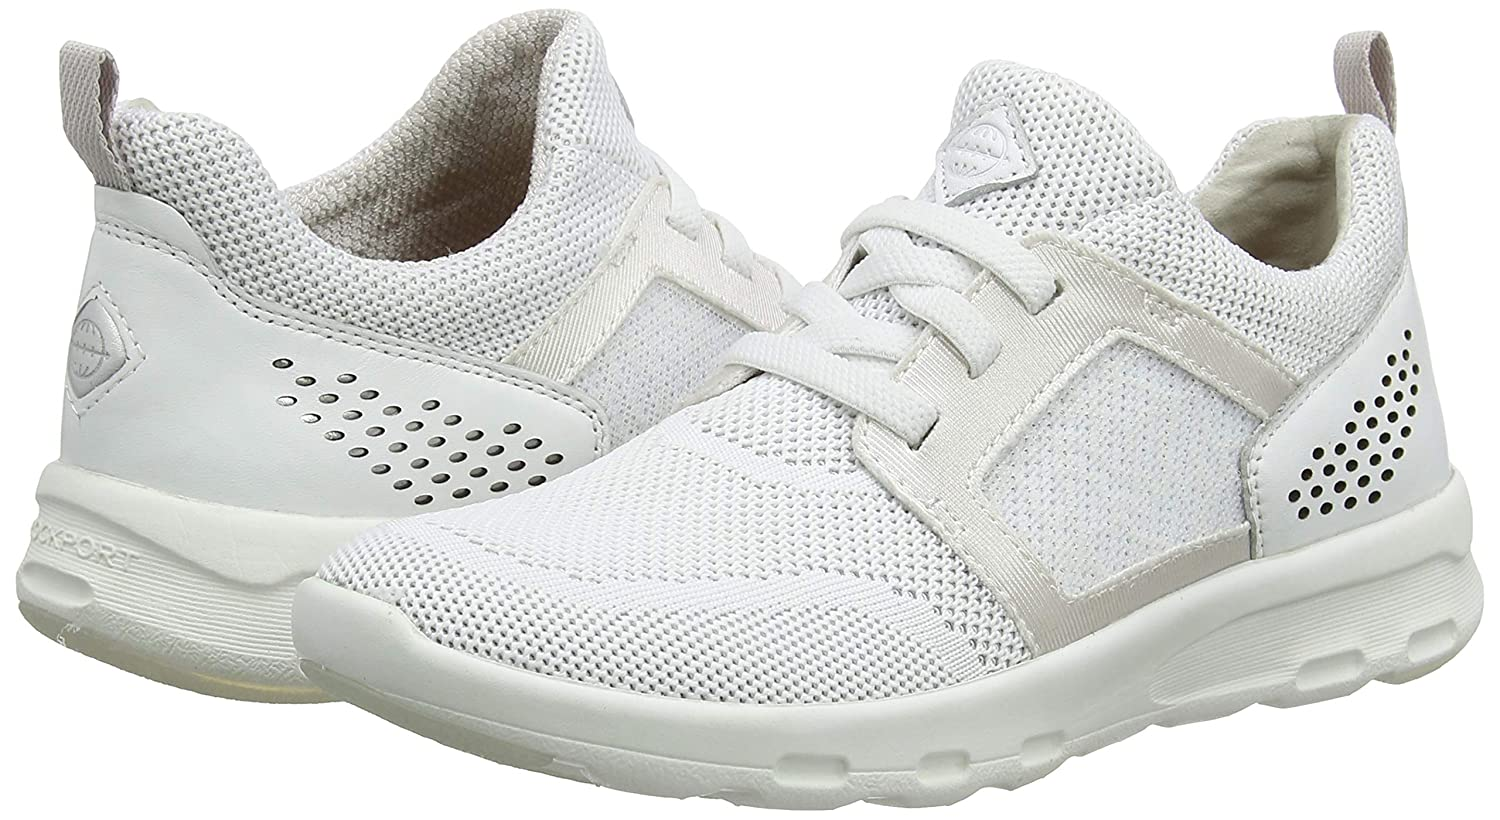 Rockport Lets Walk Womens Knit Trainers